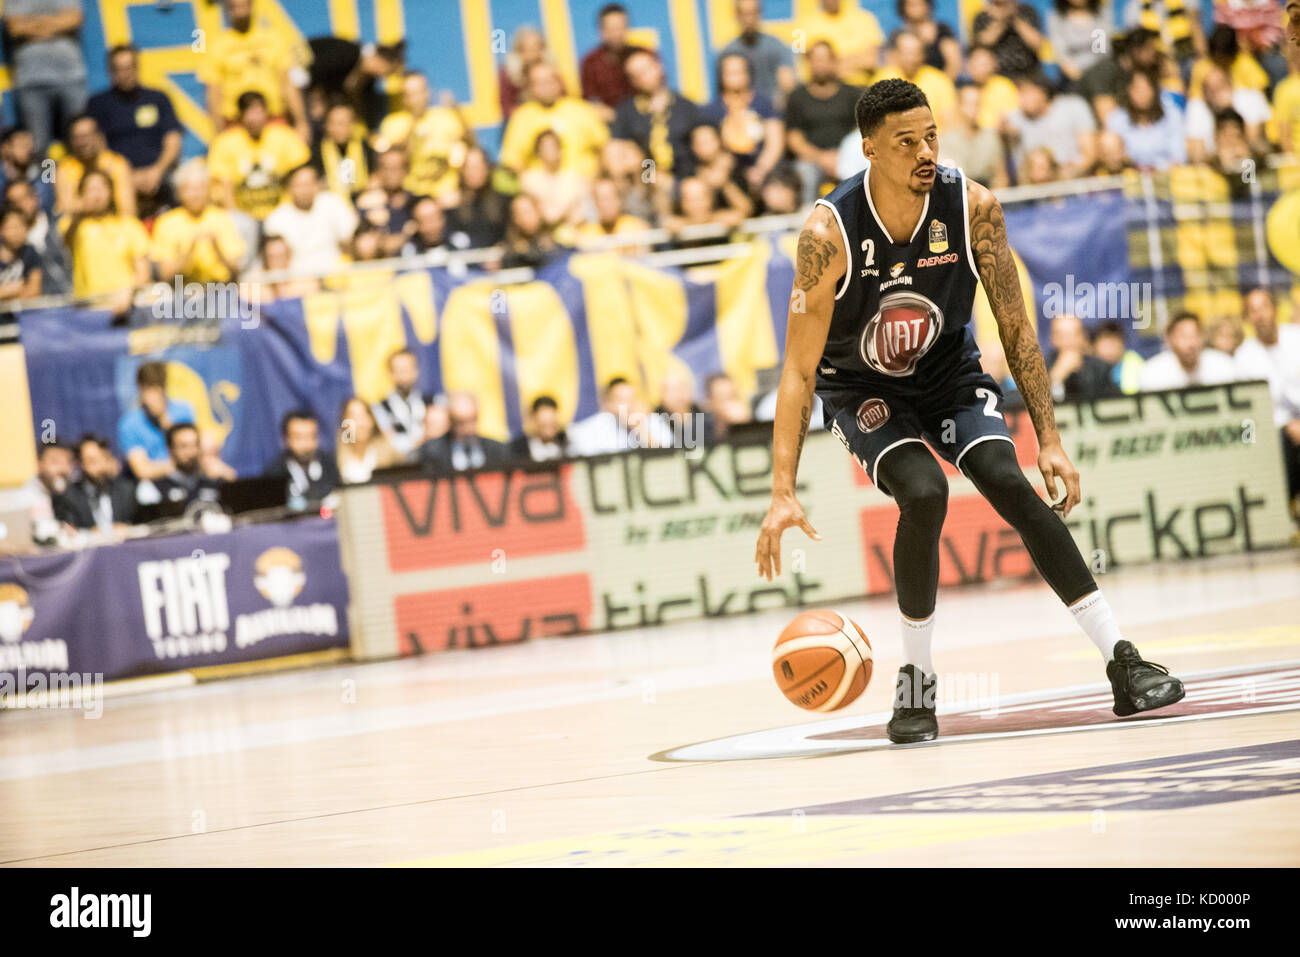 Turin, Italy. 07th Oct, 2017. Turin, Italy 7th october 2017. Diante Garret during the Serie A an Basketball match Stock Photo